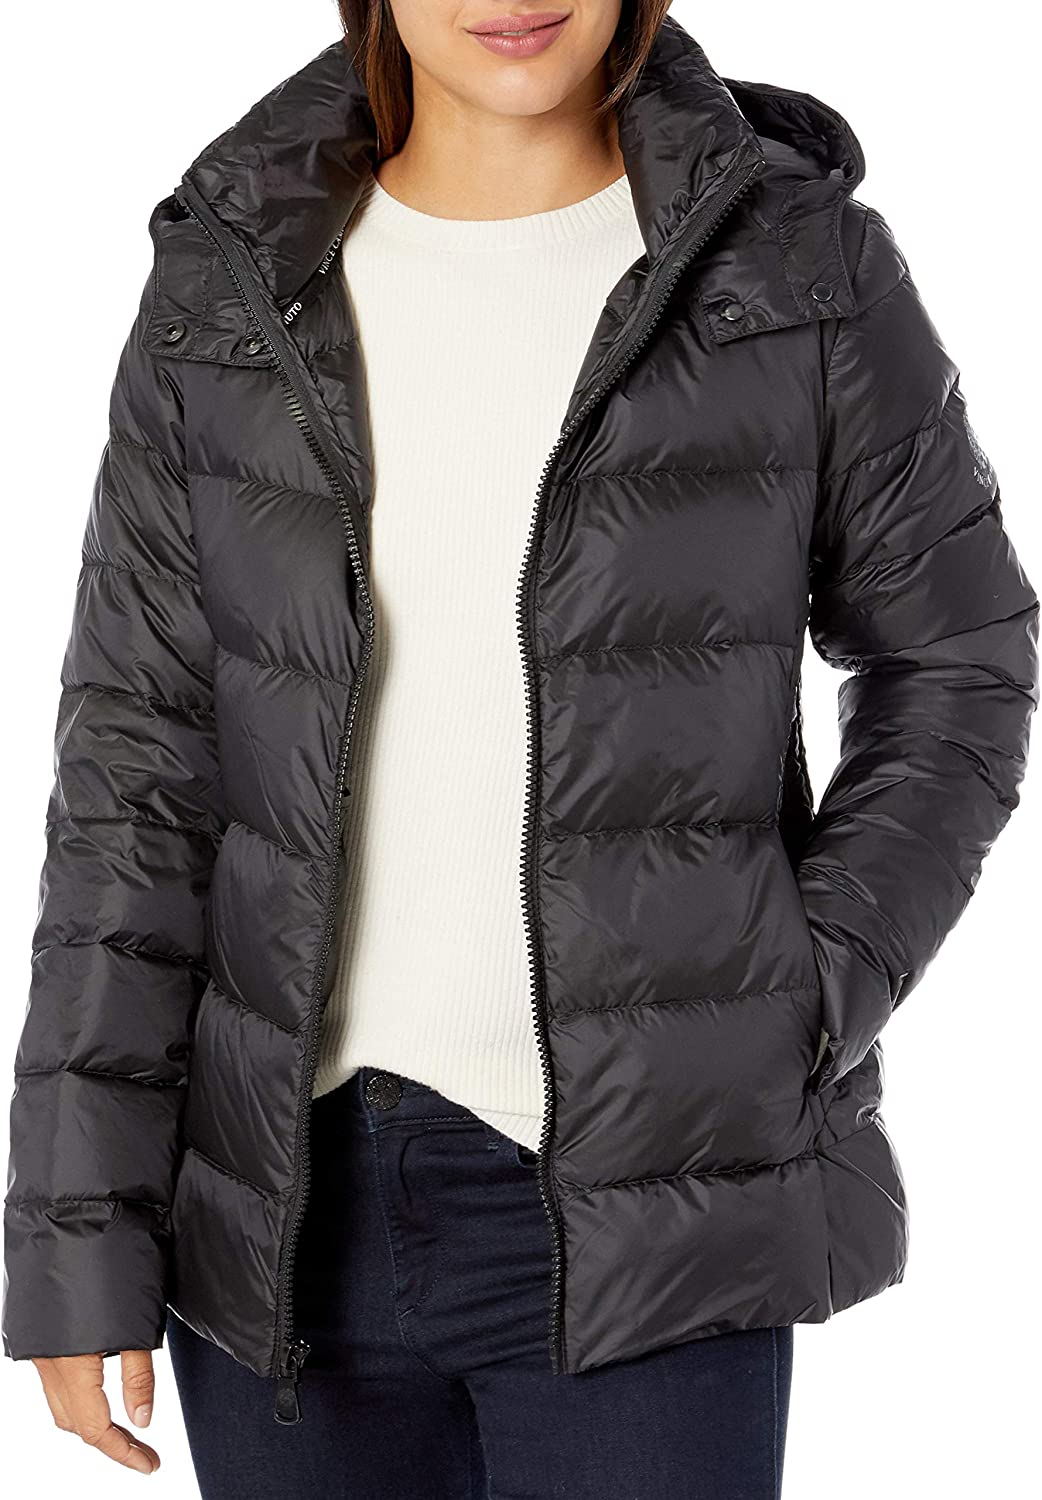 VINCE CAMUTO Womens Puffer Jacket